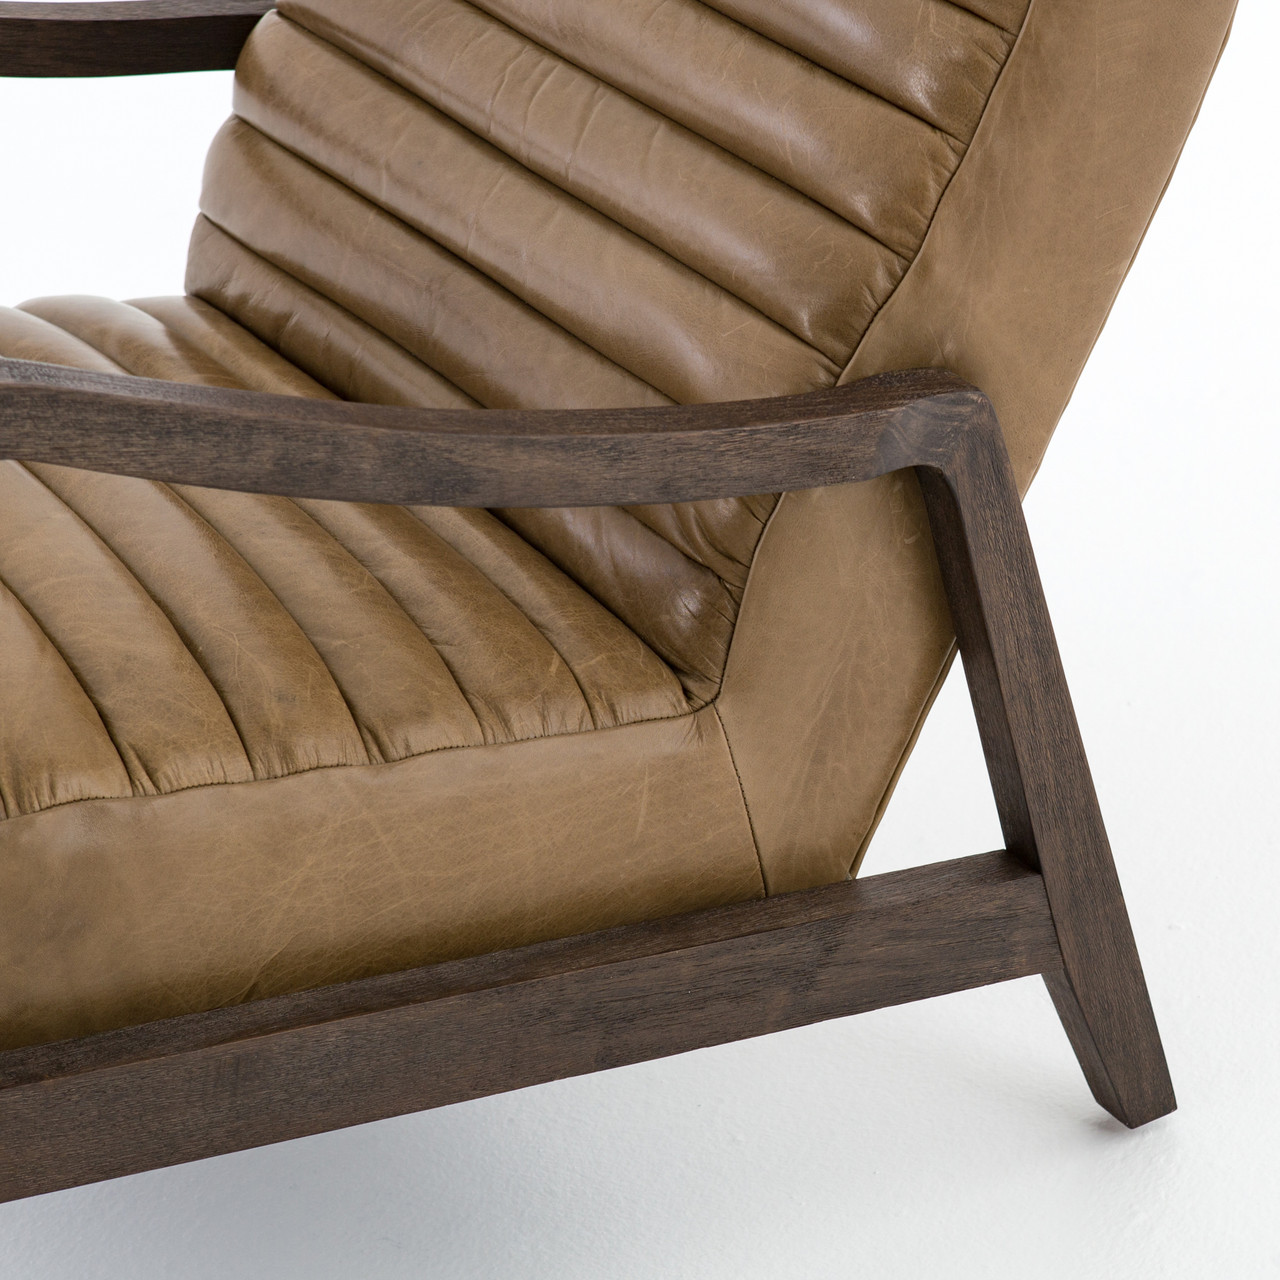 Outlander Lounger Armchair